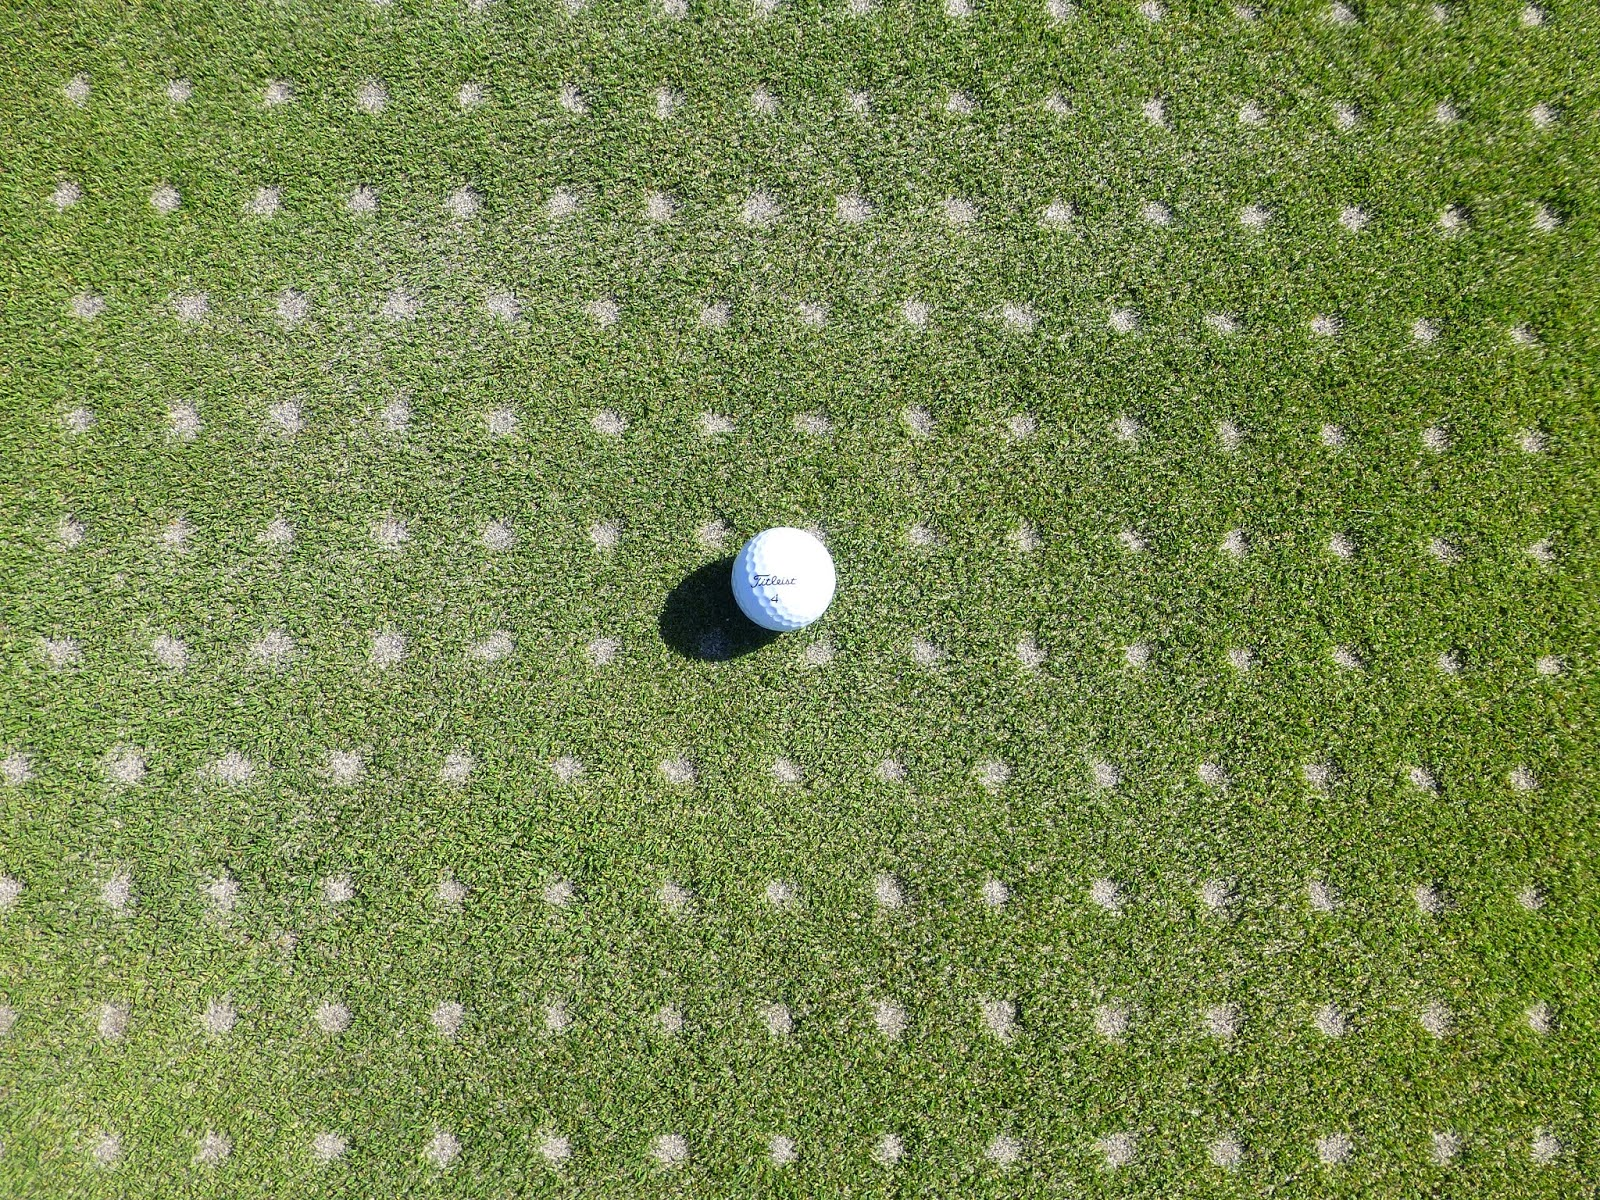 Hollow coring the greens